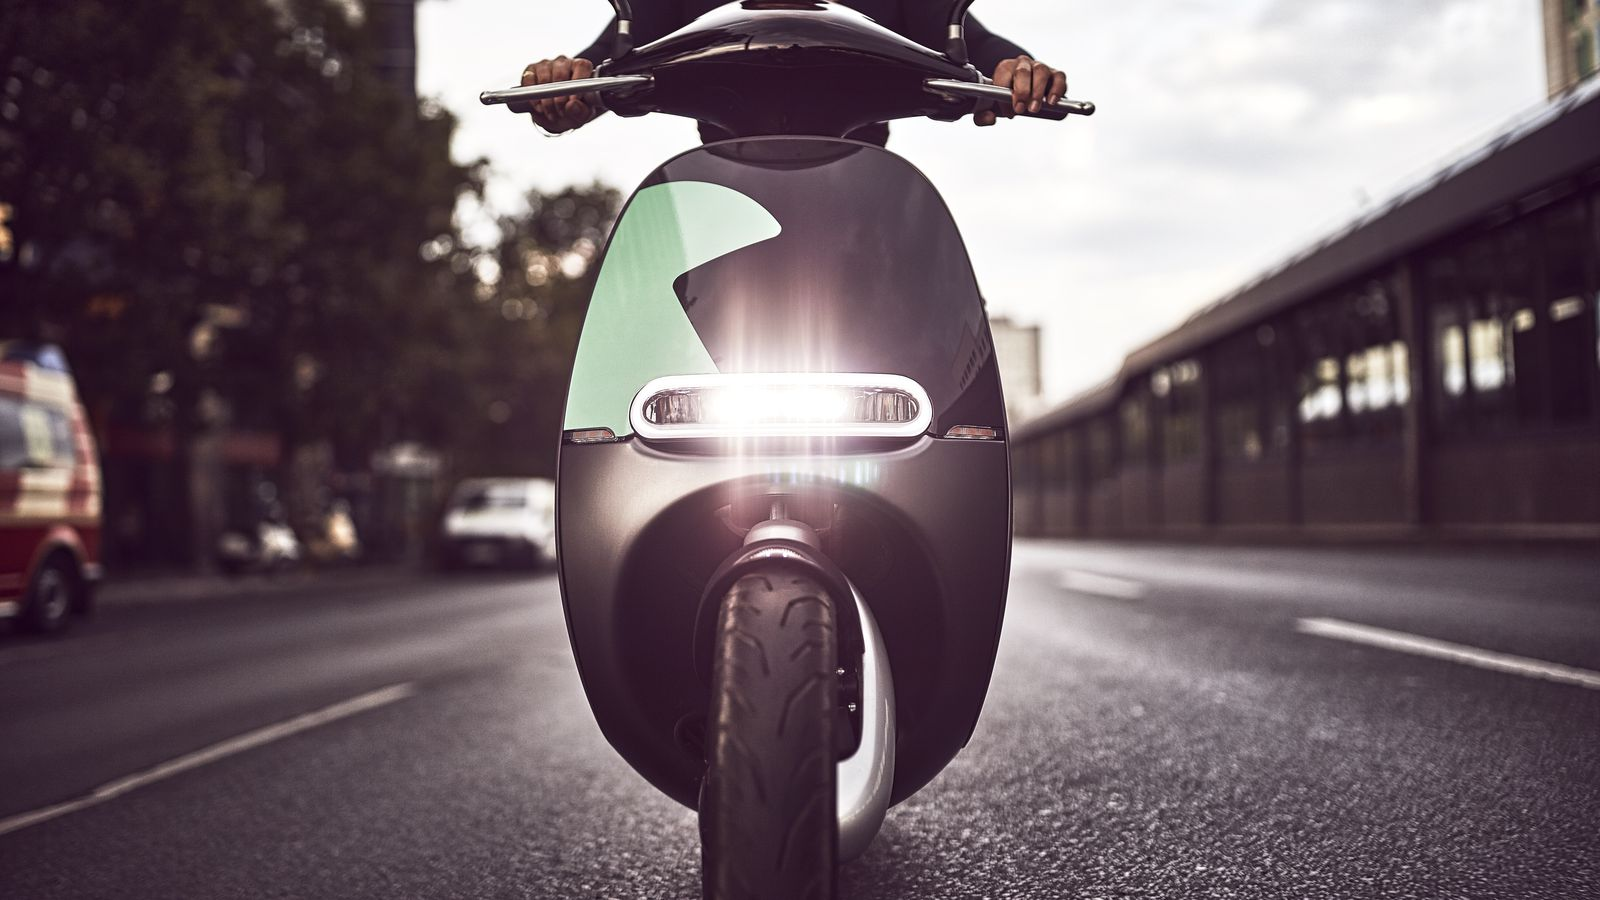 gogoro starts an electric scooter sharing program in berlin the verge. Black Bedroom Furniture Sets. Home Design Ideas